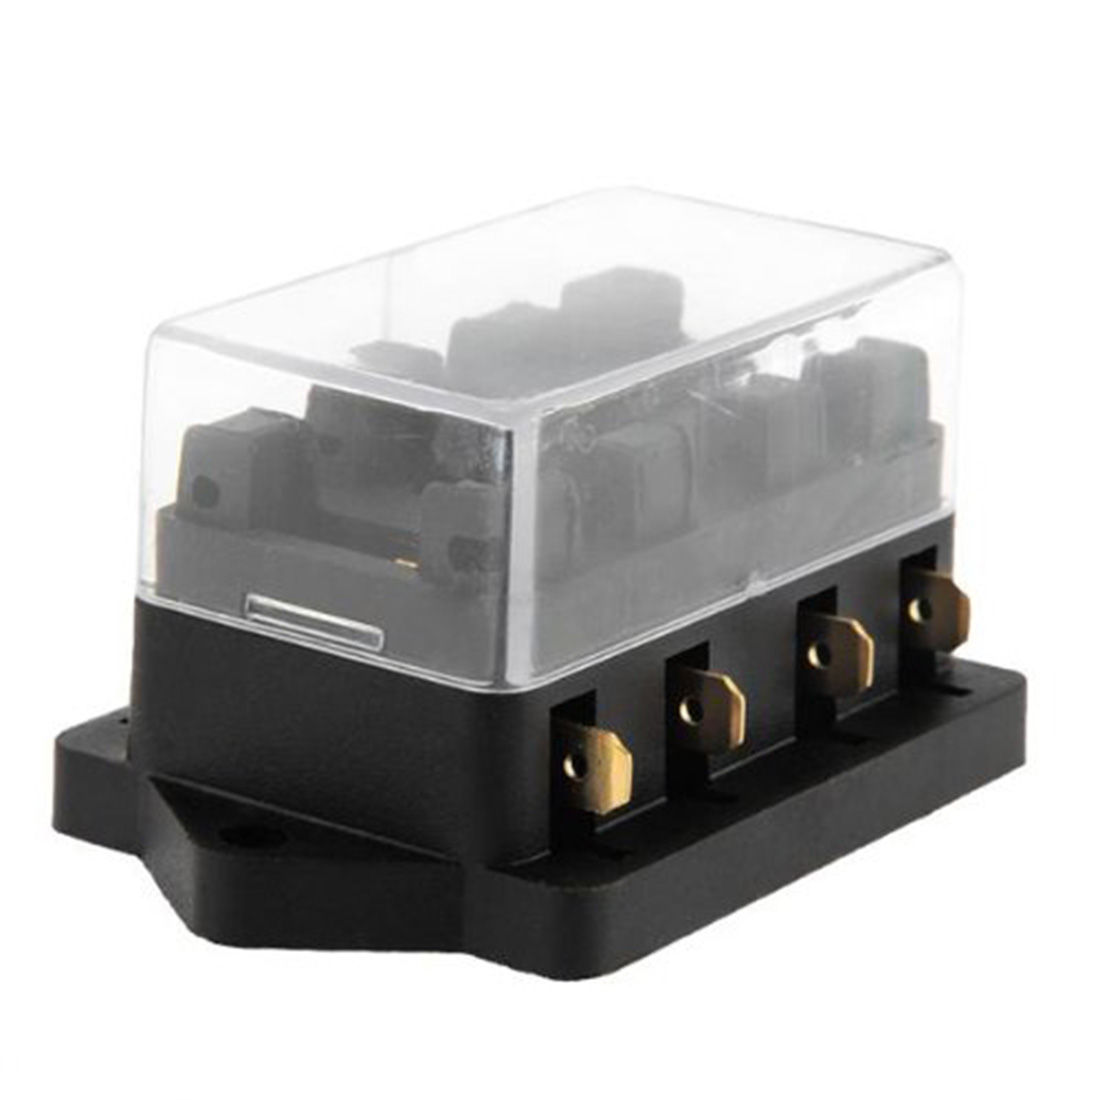 online buy whole hot fuse box from hot fuse box 2016 shipping 4 way fuse box block fuse holder box car vehicle circuit automotive blade